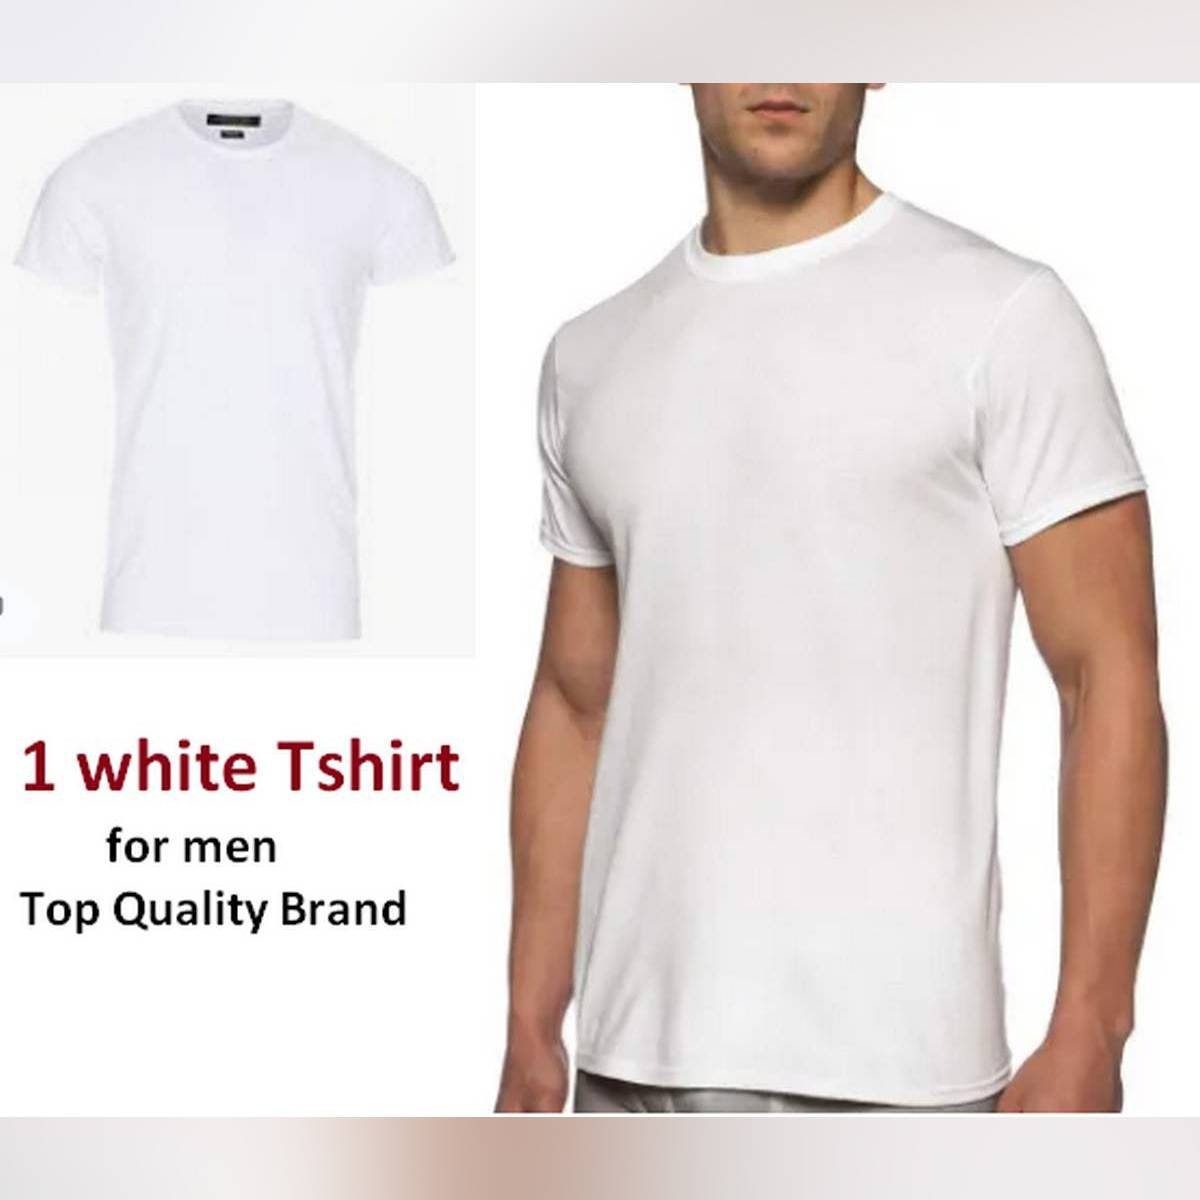 Plain White Neck Cotton Half Sleeve Tshirt For Men Best for Sport Gym and night